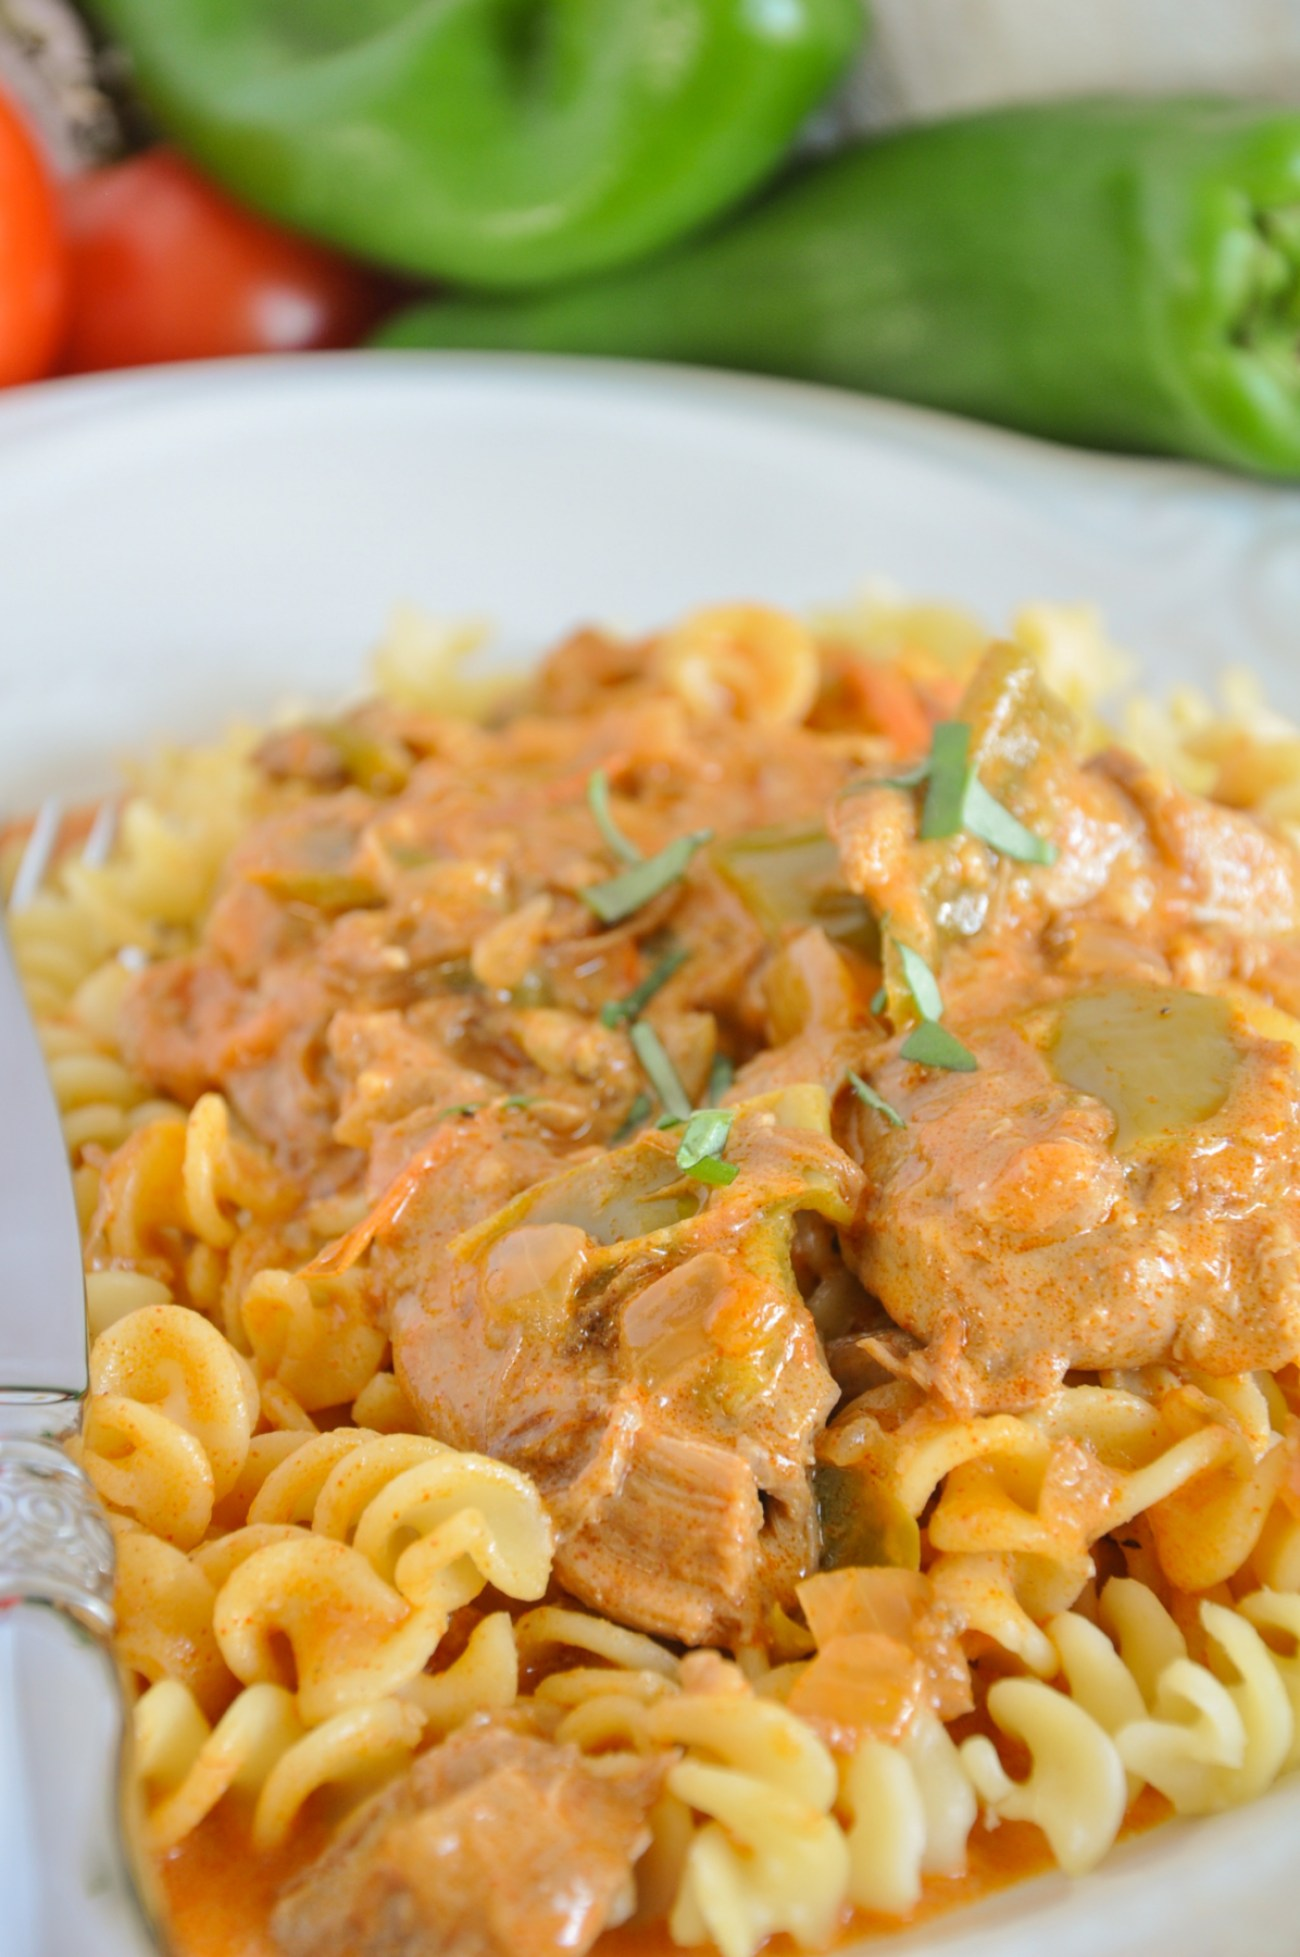 Home & Feast by Stasia Wimmer Easy Hungarian Chicken Paprikash Recipe